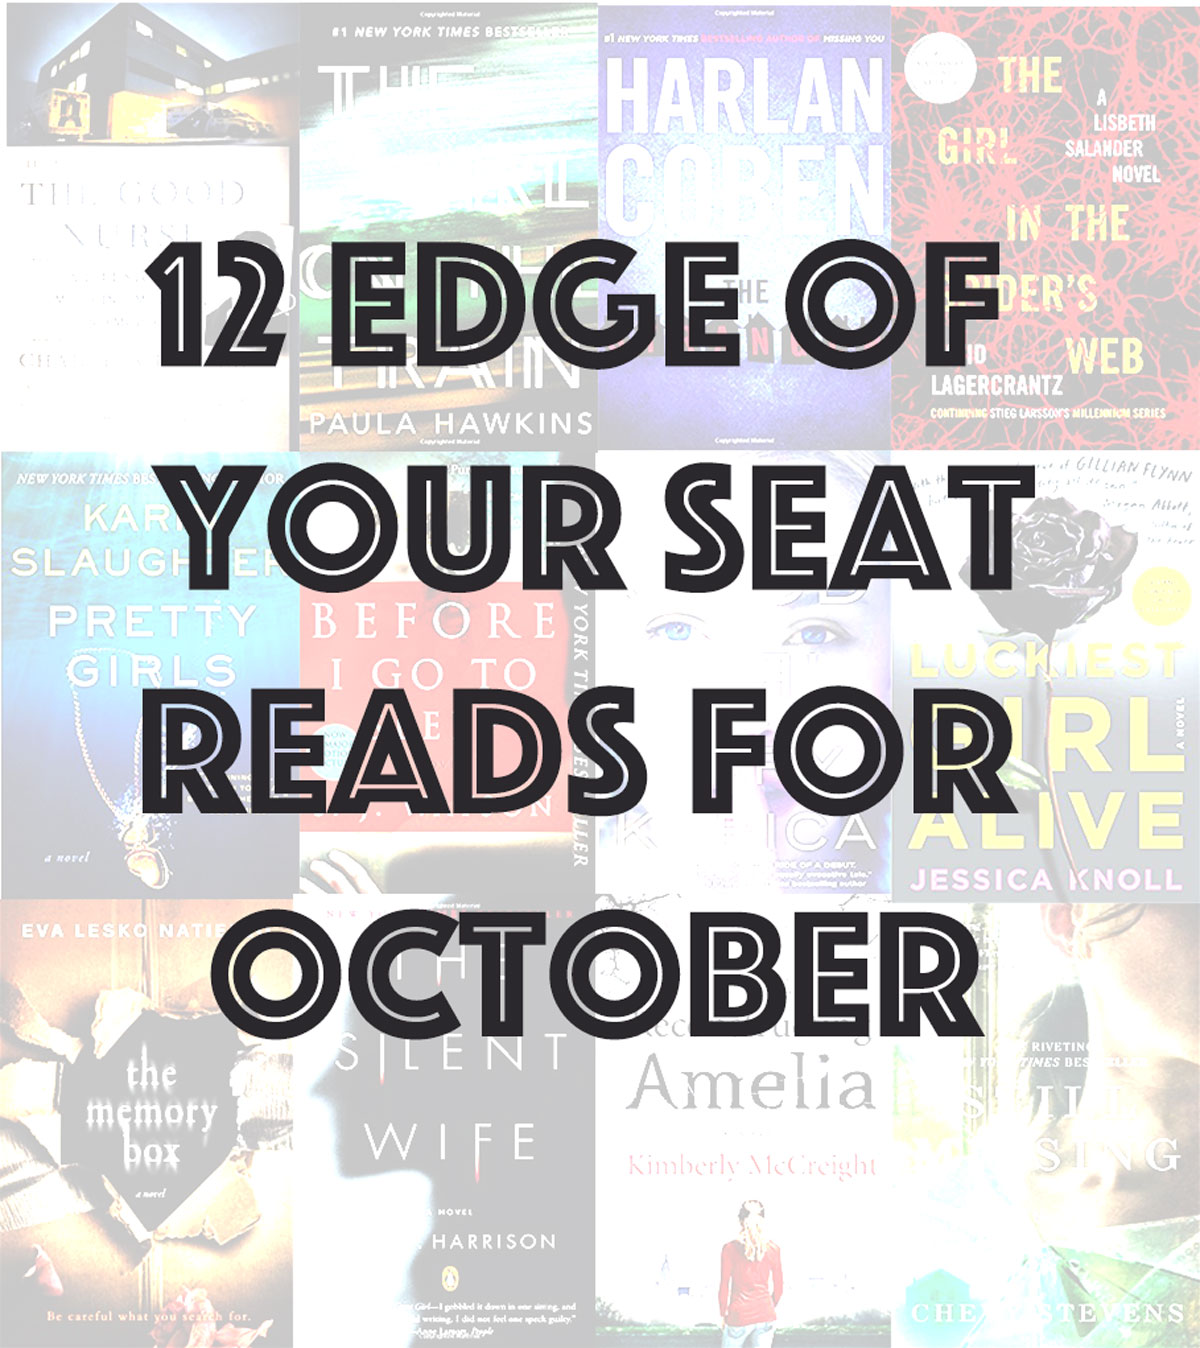 Pin now - a list of edge-of-your-seat reads for October